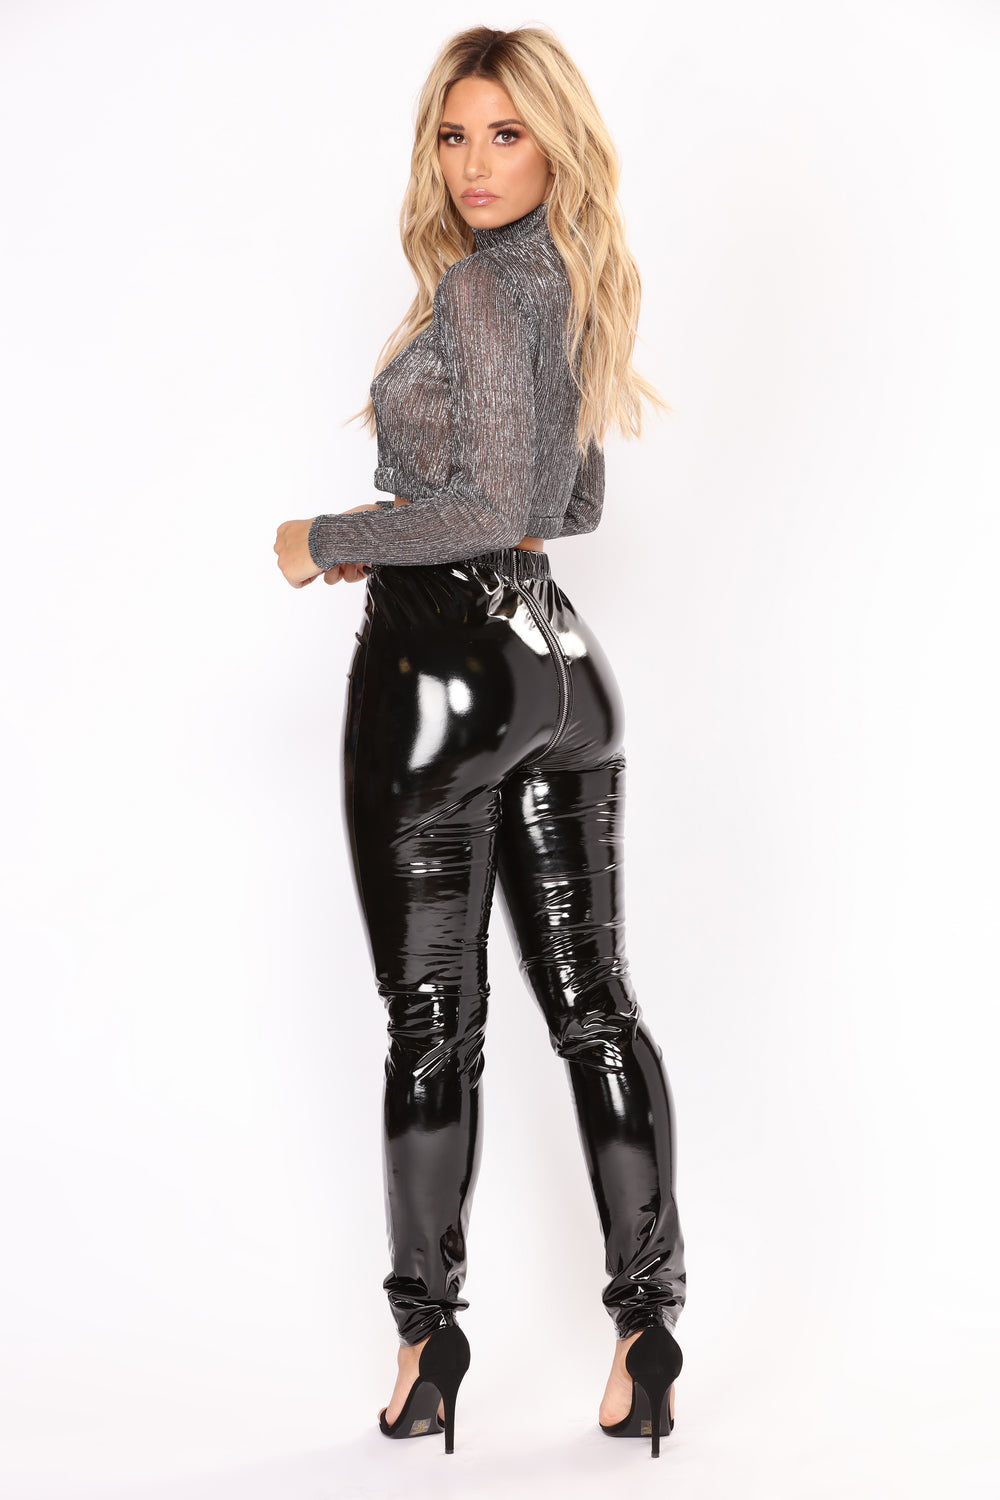 All Black Outfit With Black Shoes Female